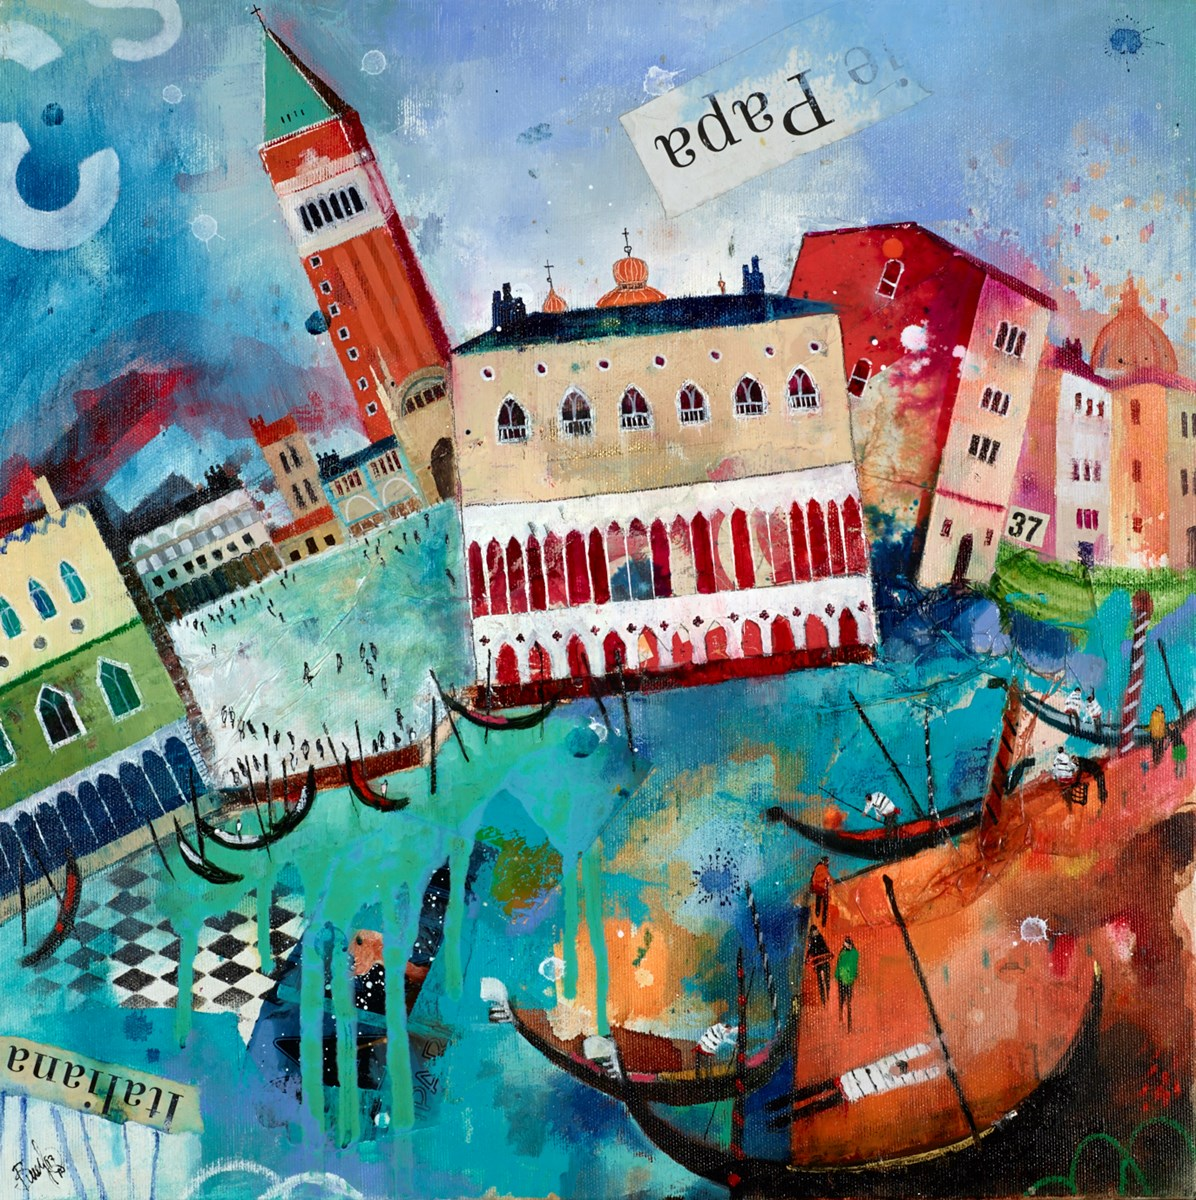 Italiana by richard burel -  sized 20x20 inches. Available from Whitewall Galleries